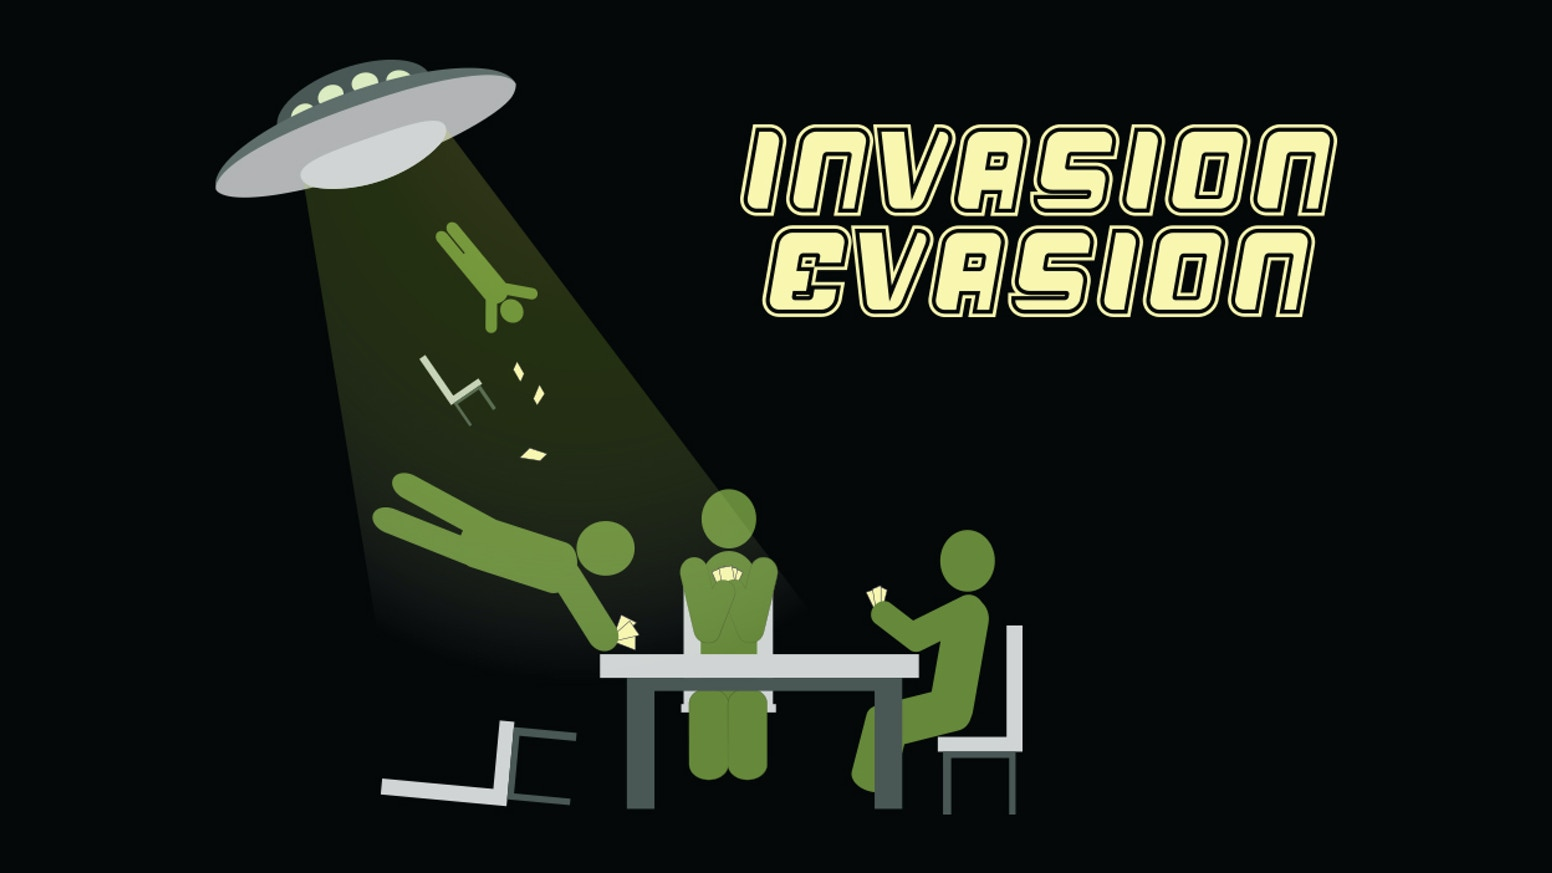 Invasion Evasion is a party game that captures the paranoia and fear of being caught in the midst of an alien attack.